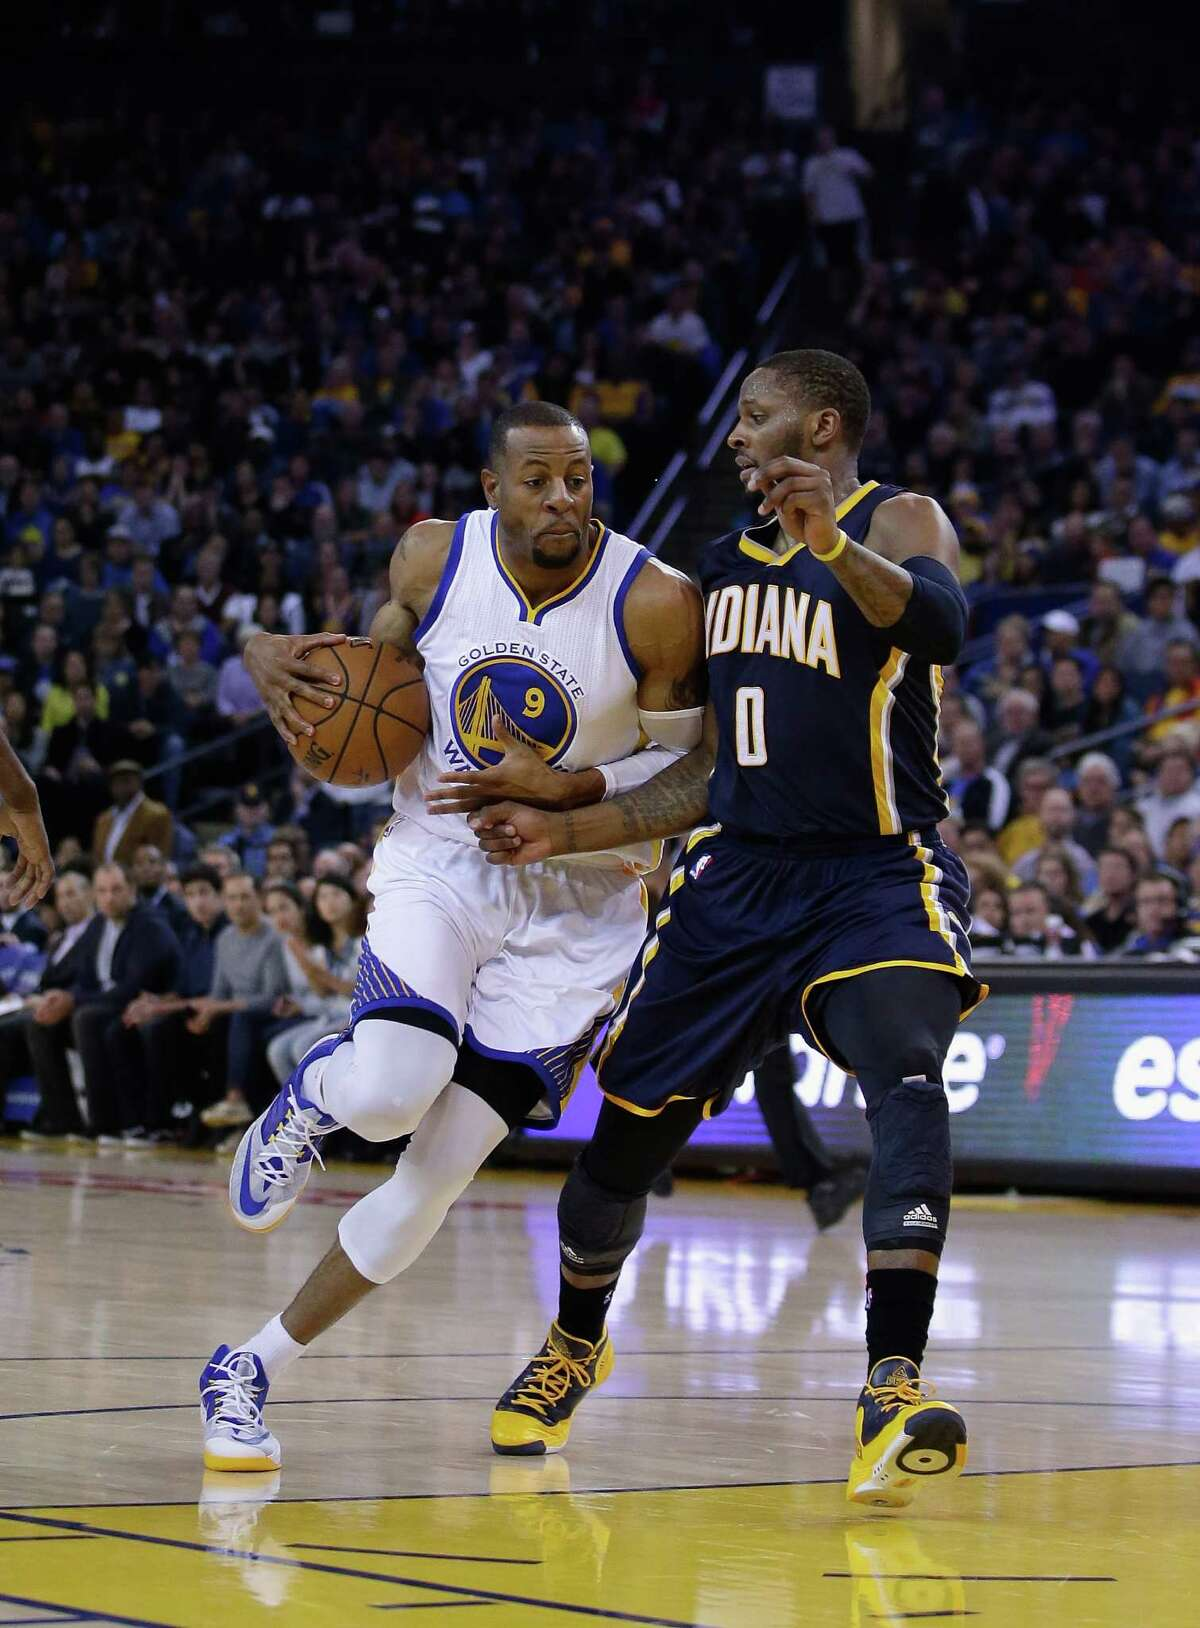 OAKLAND, CA - JANUARY 07: Andre Iguodala #9 of the Golden State Warriors drives on C.J. Miles #0 of the Indiana Pacers at ORACLE Arena on January 7, 2015 in Oakland, California. NOTE TO USER: User expressly acknowledges and agrees that, by downloading and or using this photograph, User is consenting to the terms and conditions of the Getty Images License Agreement. (Photo by Ezra Shaw/Getty Images)